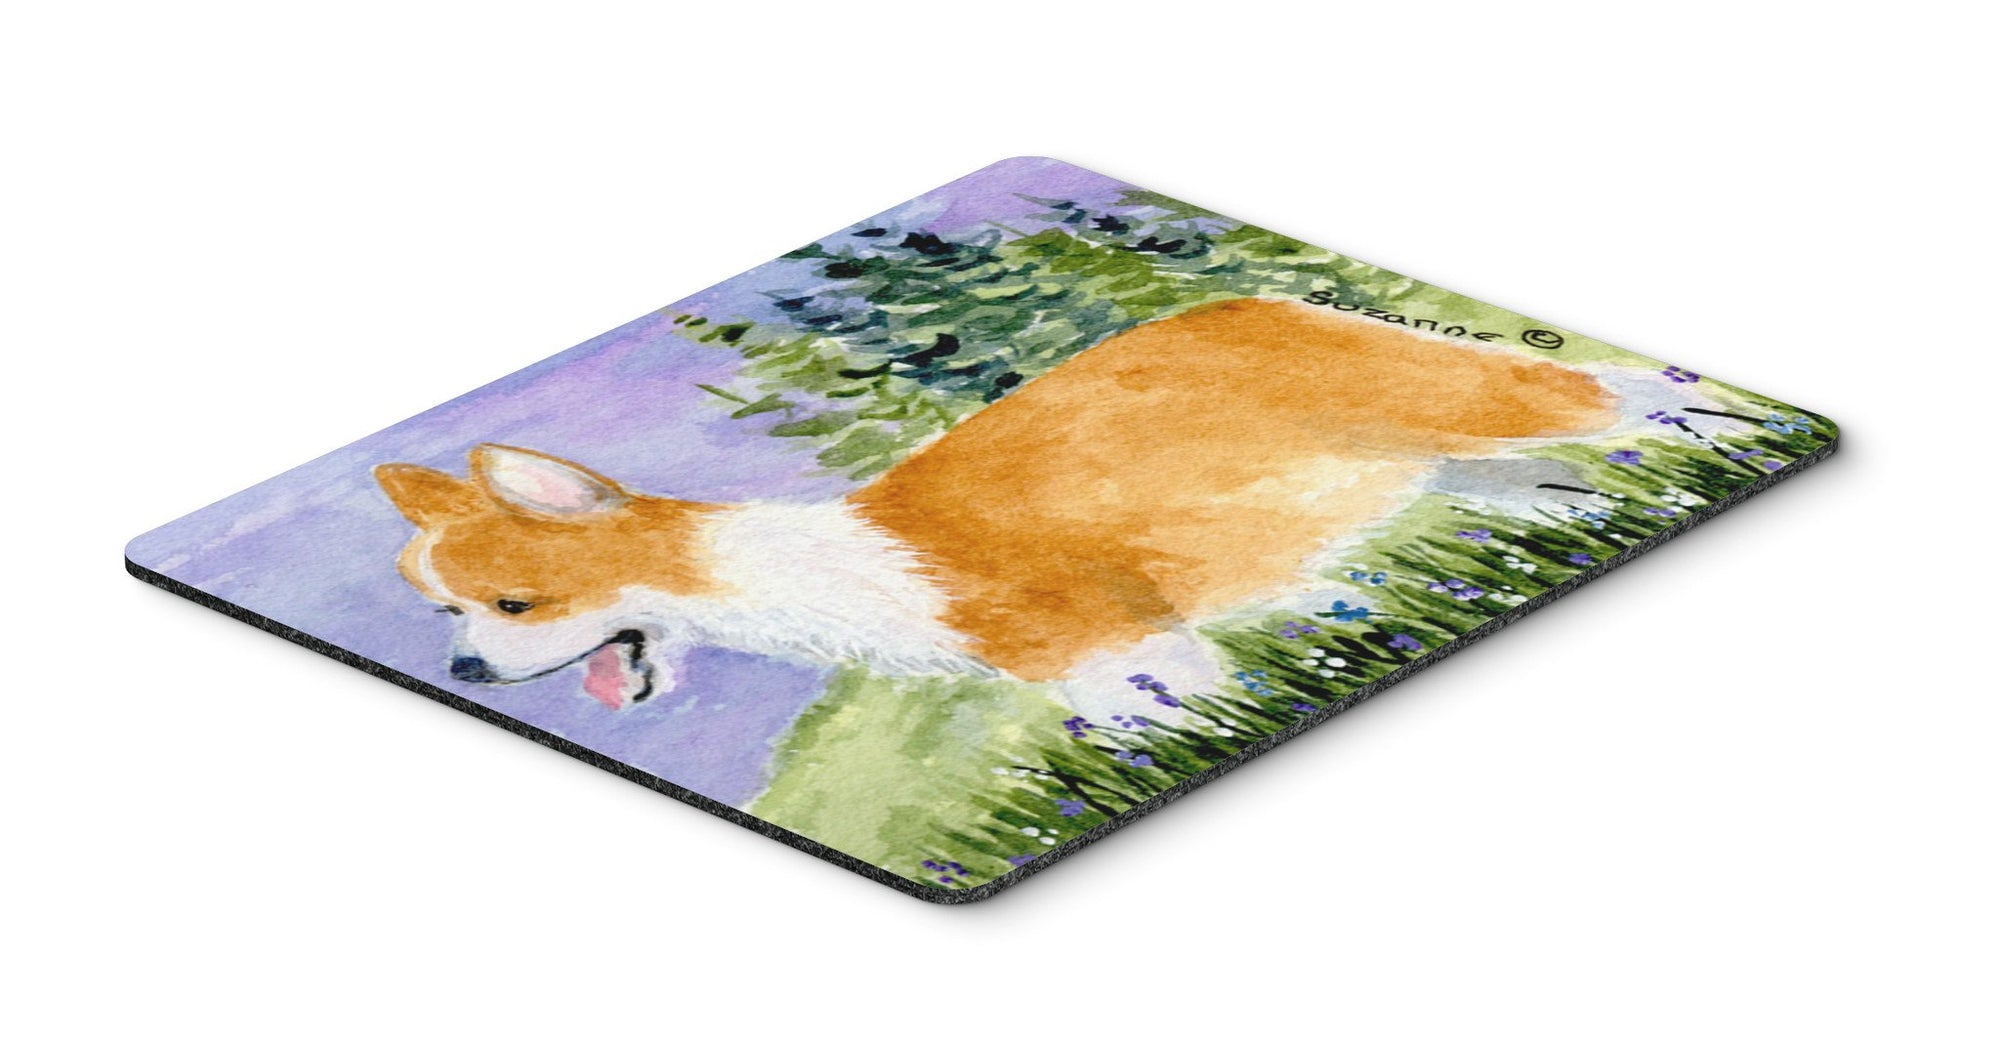 Corgi Mouse pad, hot pad, or trivet by Caroline's Treasures